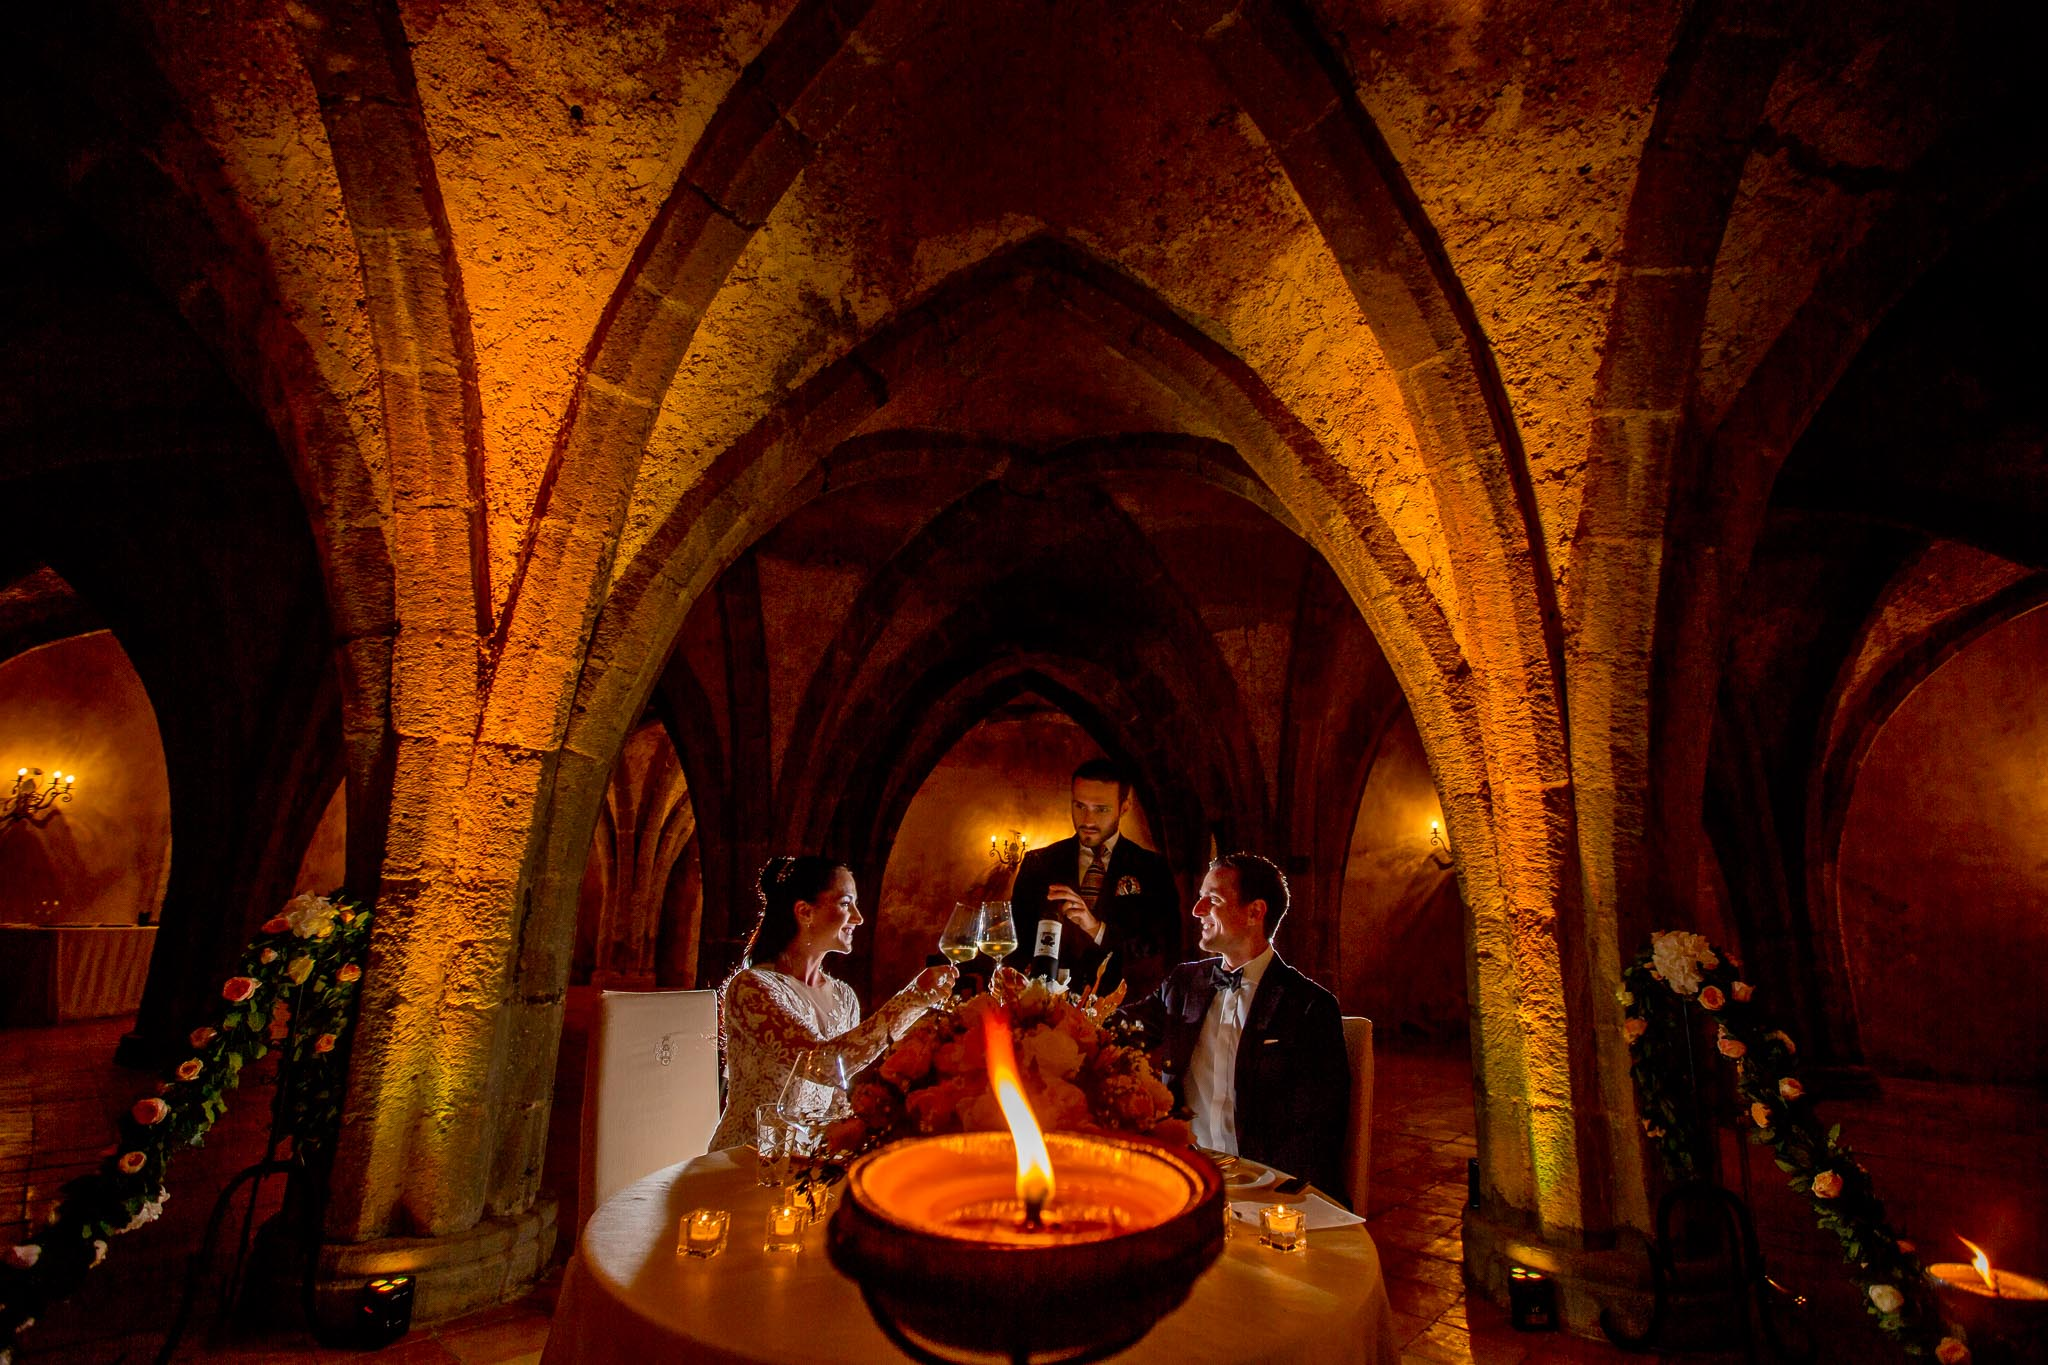 Bride and Groom toasting to wine in Crypt at Villa Cimbrone in Amalfi Italy